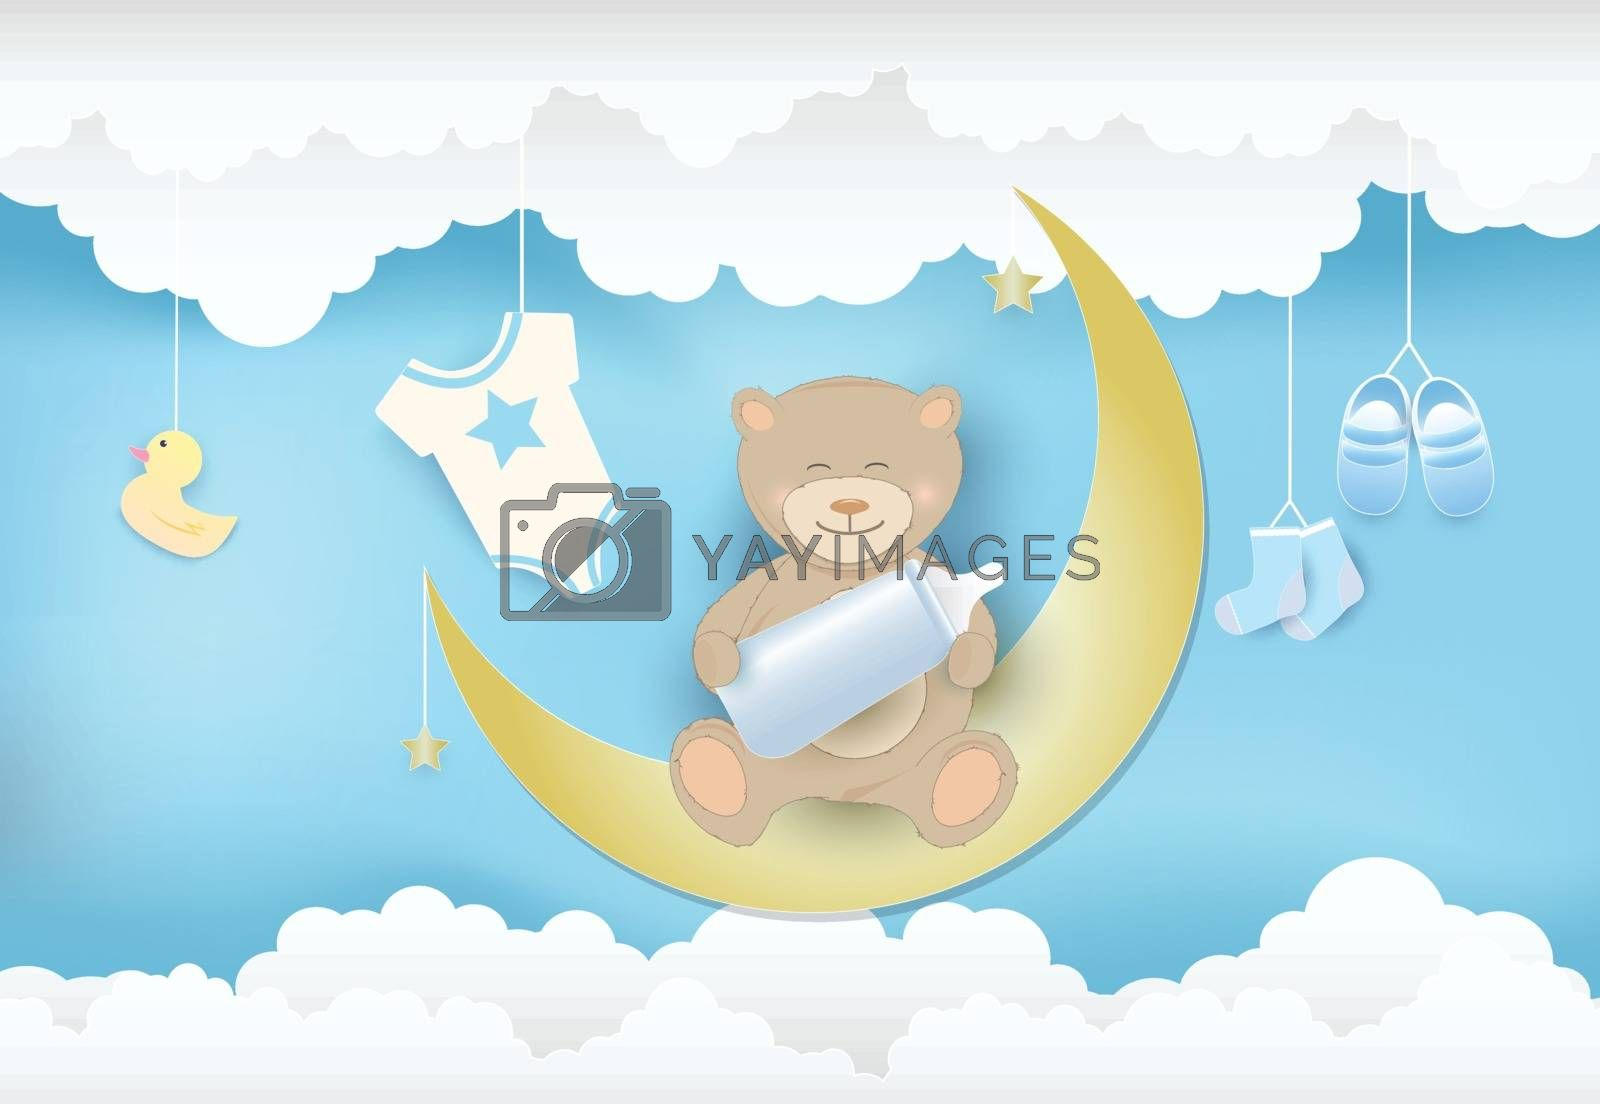 Paper art of cloud with toy shower and teddy bear sitting on the moon, sky background paper cut style, baby boy card illustration